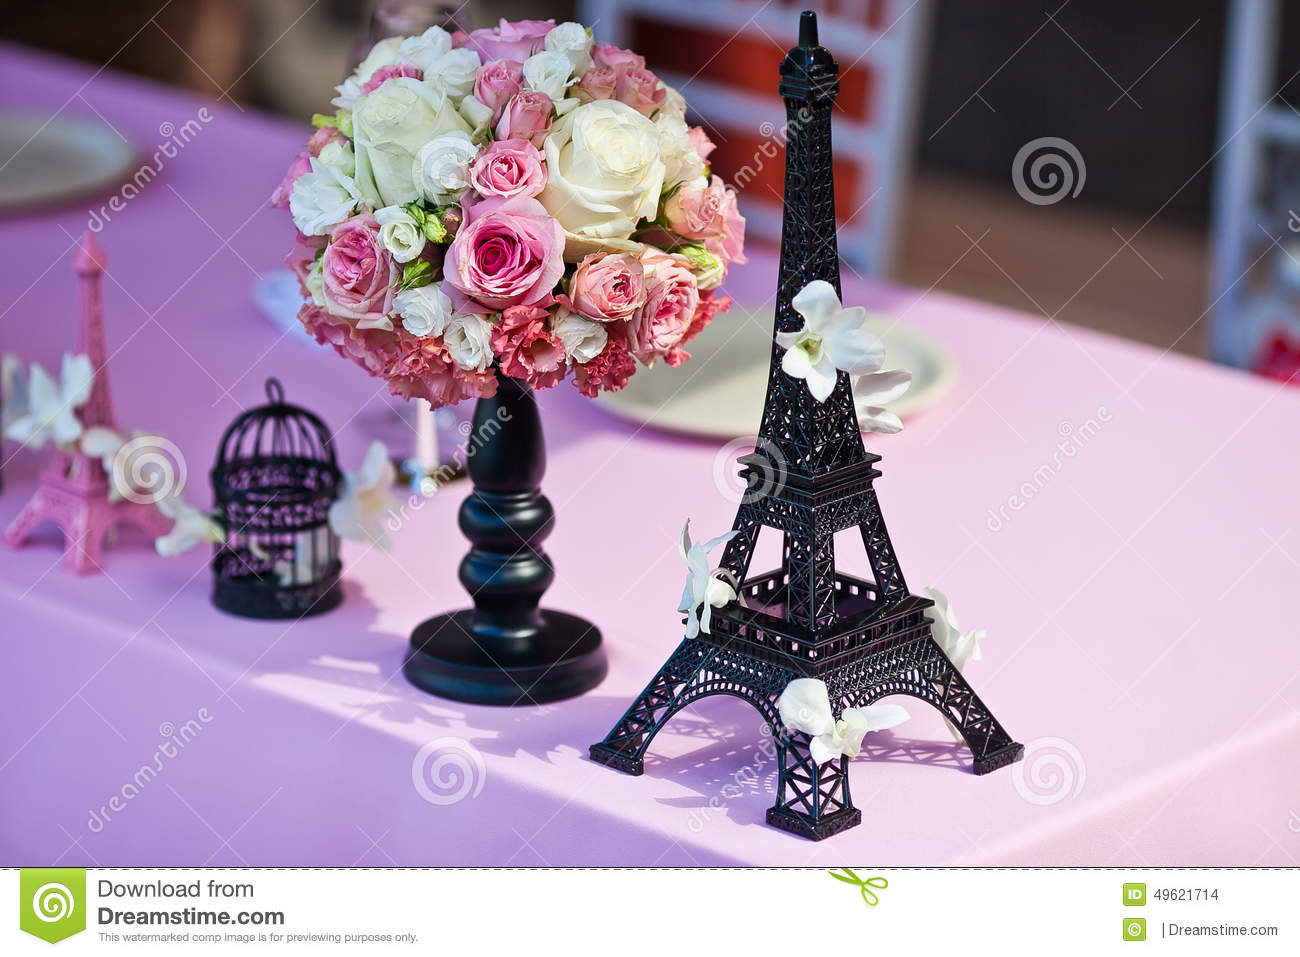 Flower bouquet with eiffel tower on a wedding table stock photo flower bouquet with eiffel tower on a wedding table mightylinksfo Gallery